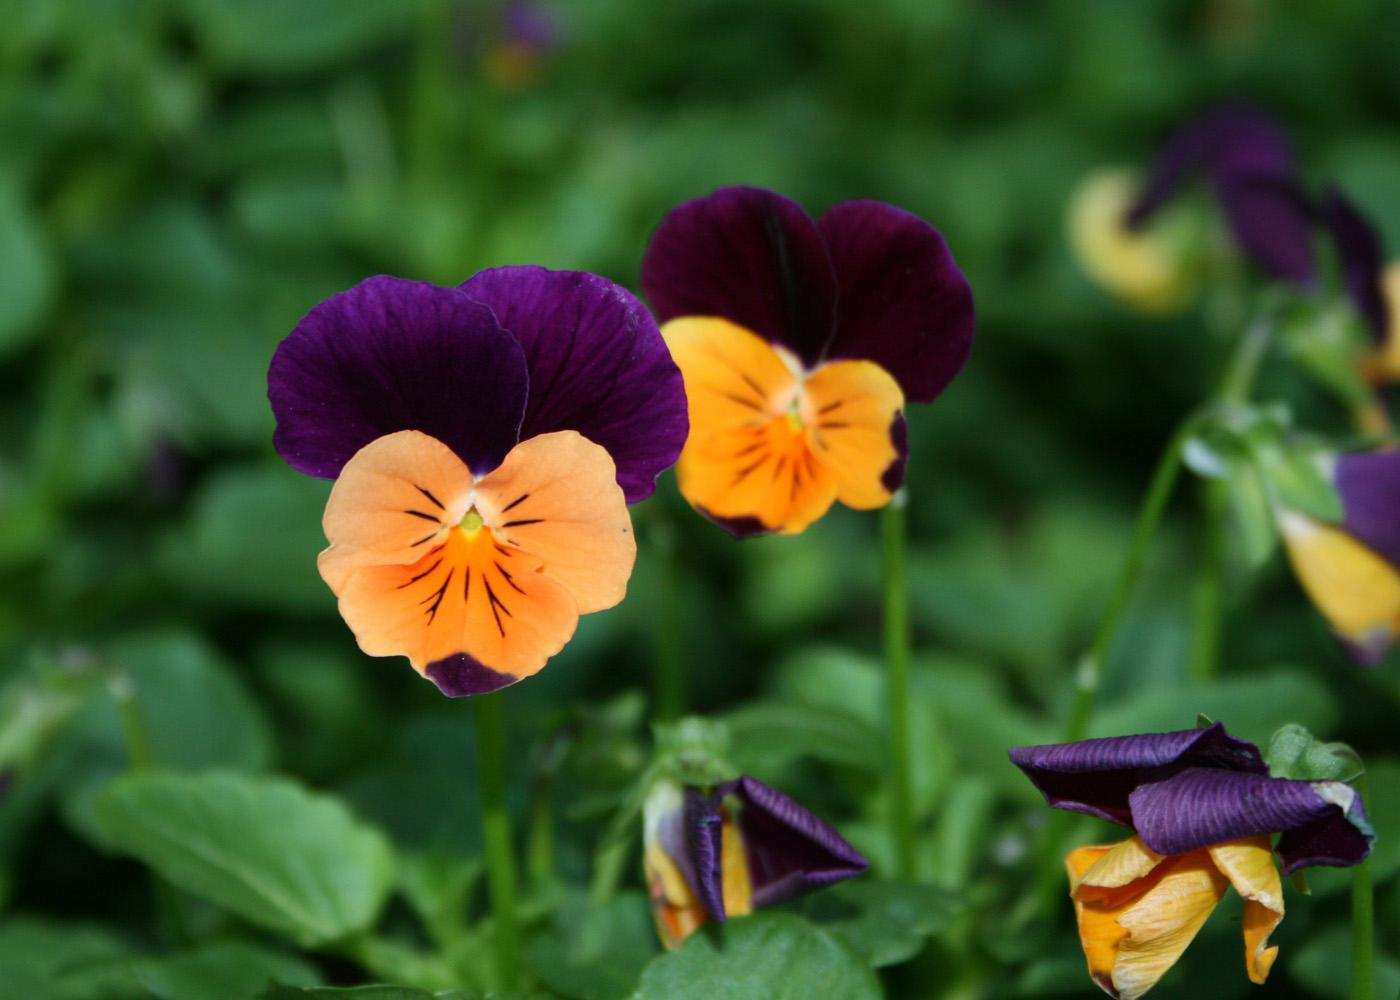 Violas come in gorgeous colors and last from Thanksgiving through Easter. The Sorbet series has a seemingly limitless selection of colors, such as Sorbet Orange Duet, a beautiful orange and purple bicolor.